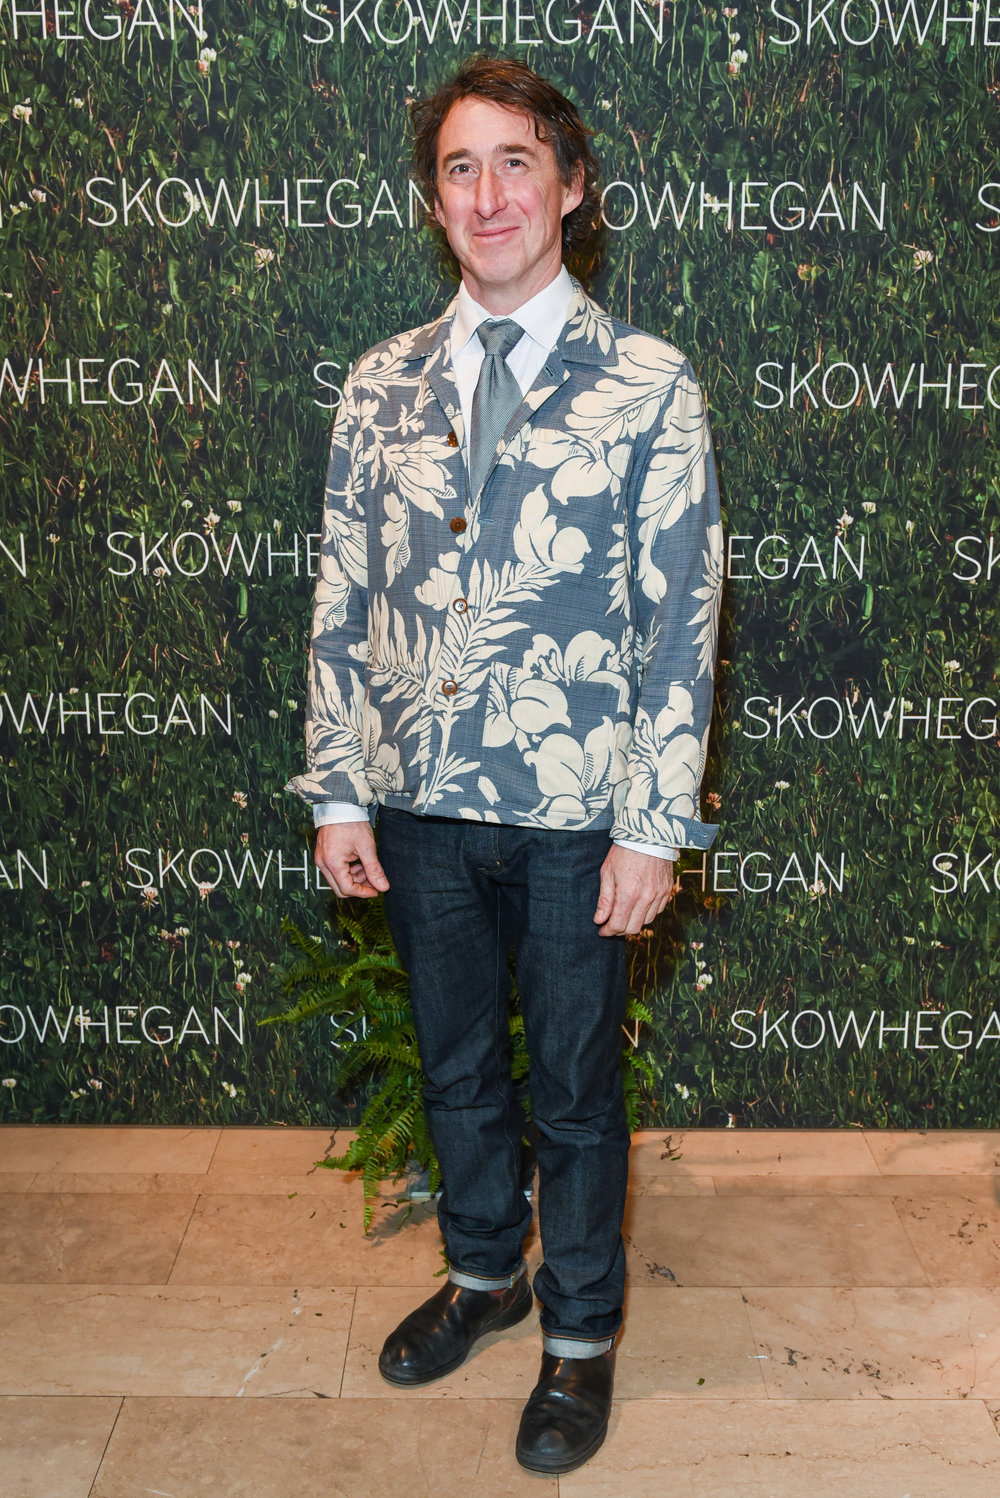 Reed Anderson==